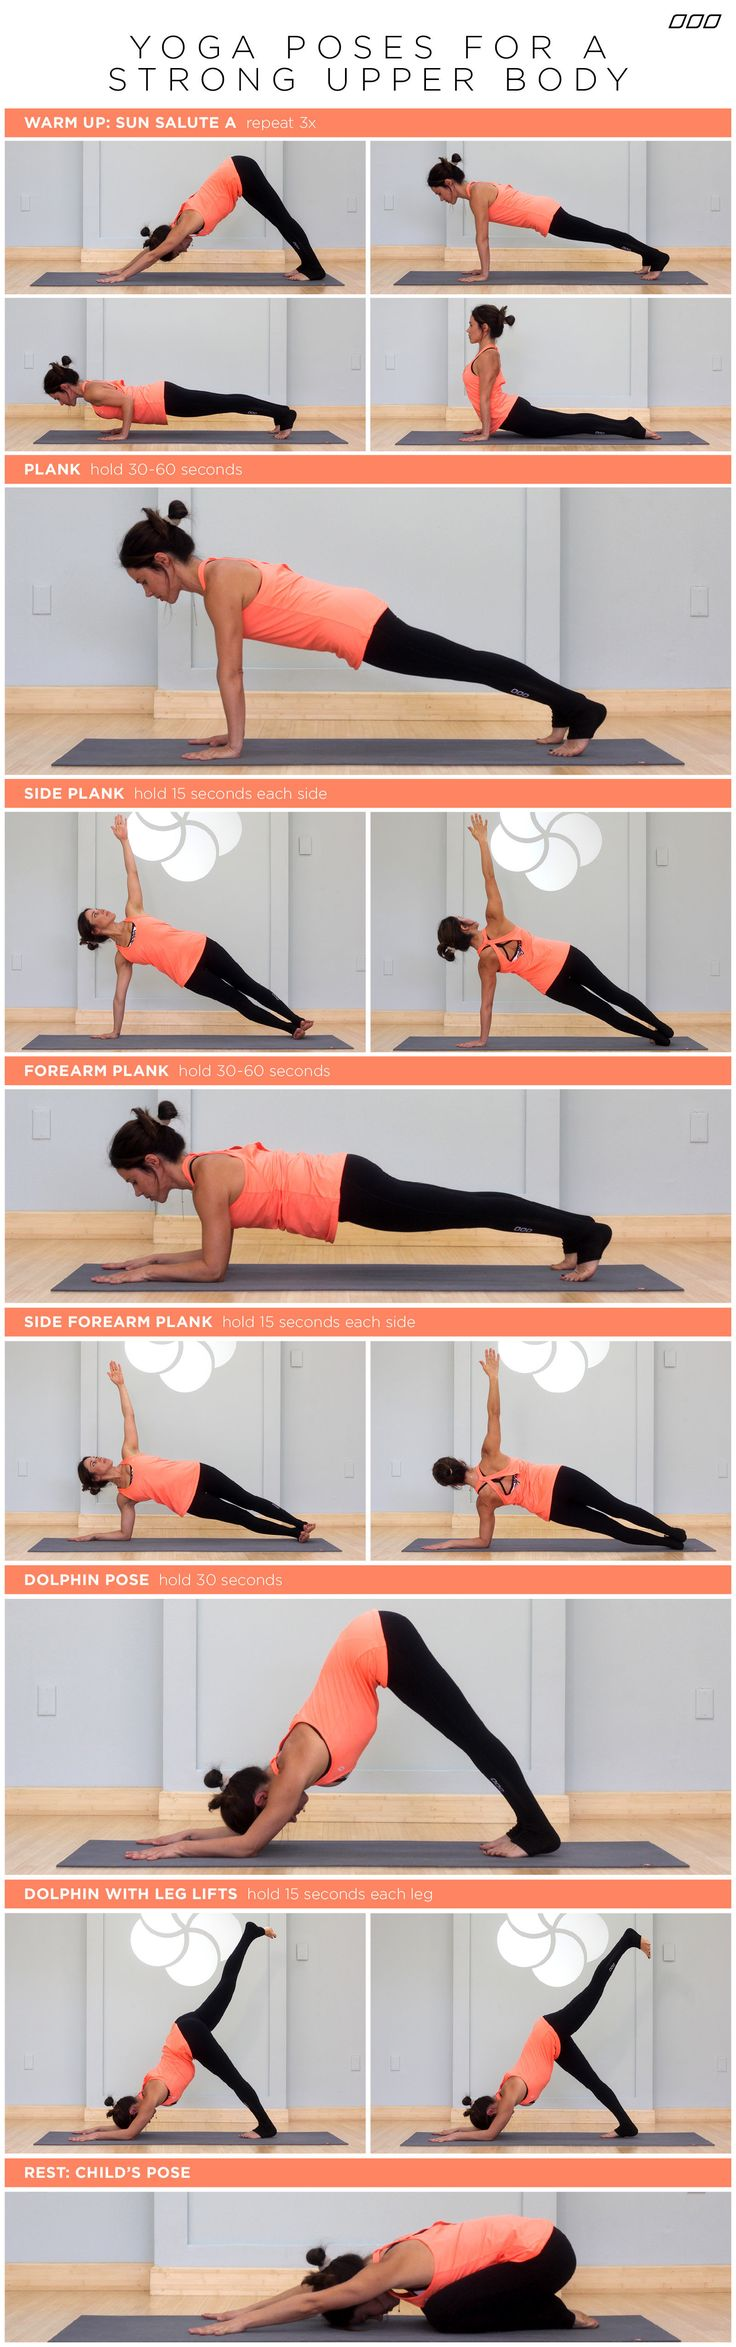 Yoga Poses For A Strong Upper Body-Yoga Poses For A Strong Upper Body